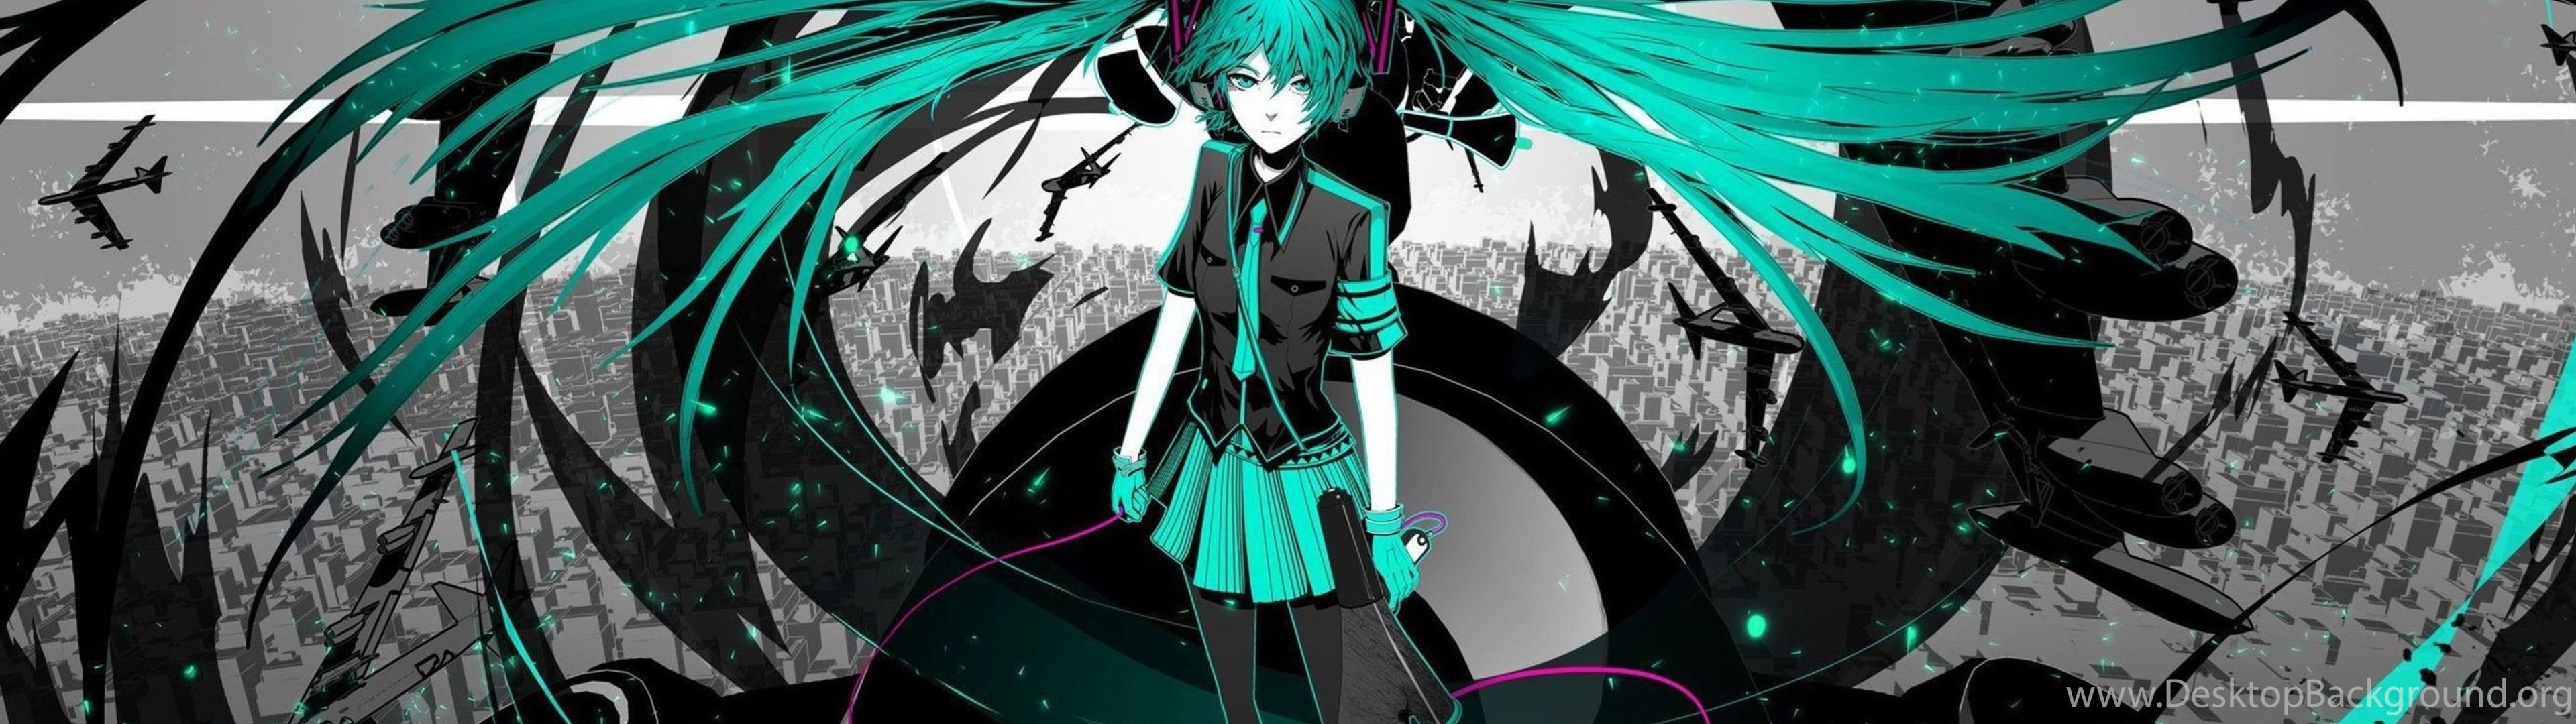 Hatsune Miku Vocaloid Wallpaper Jpg Desktop Background